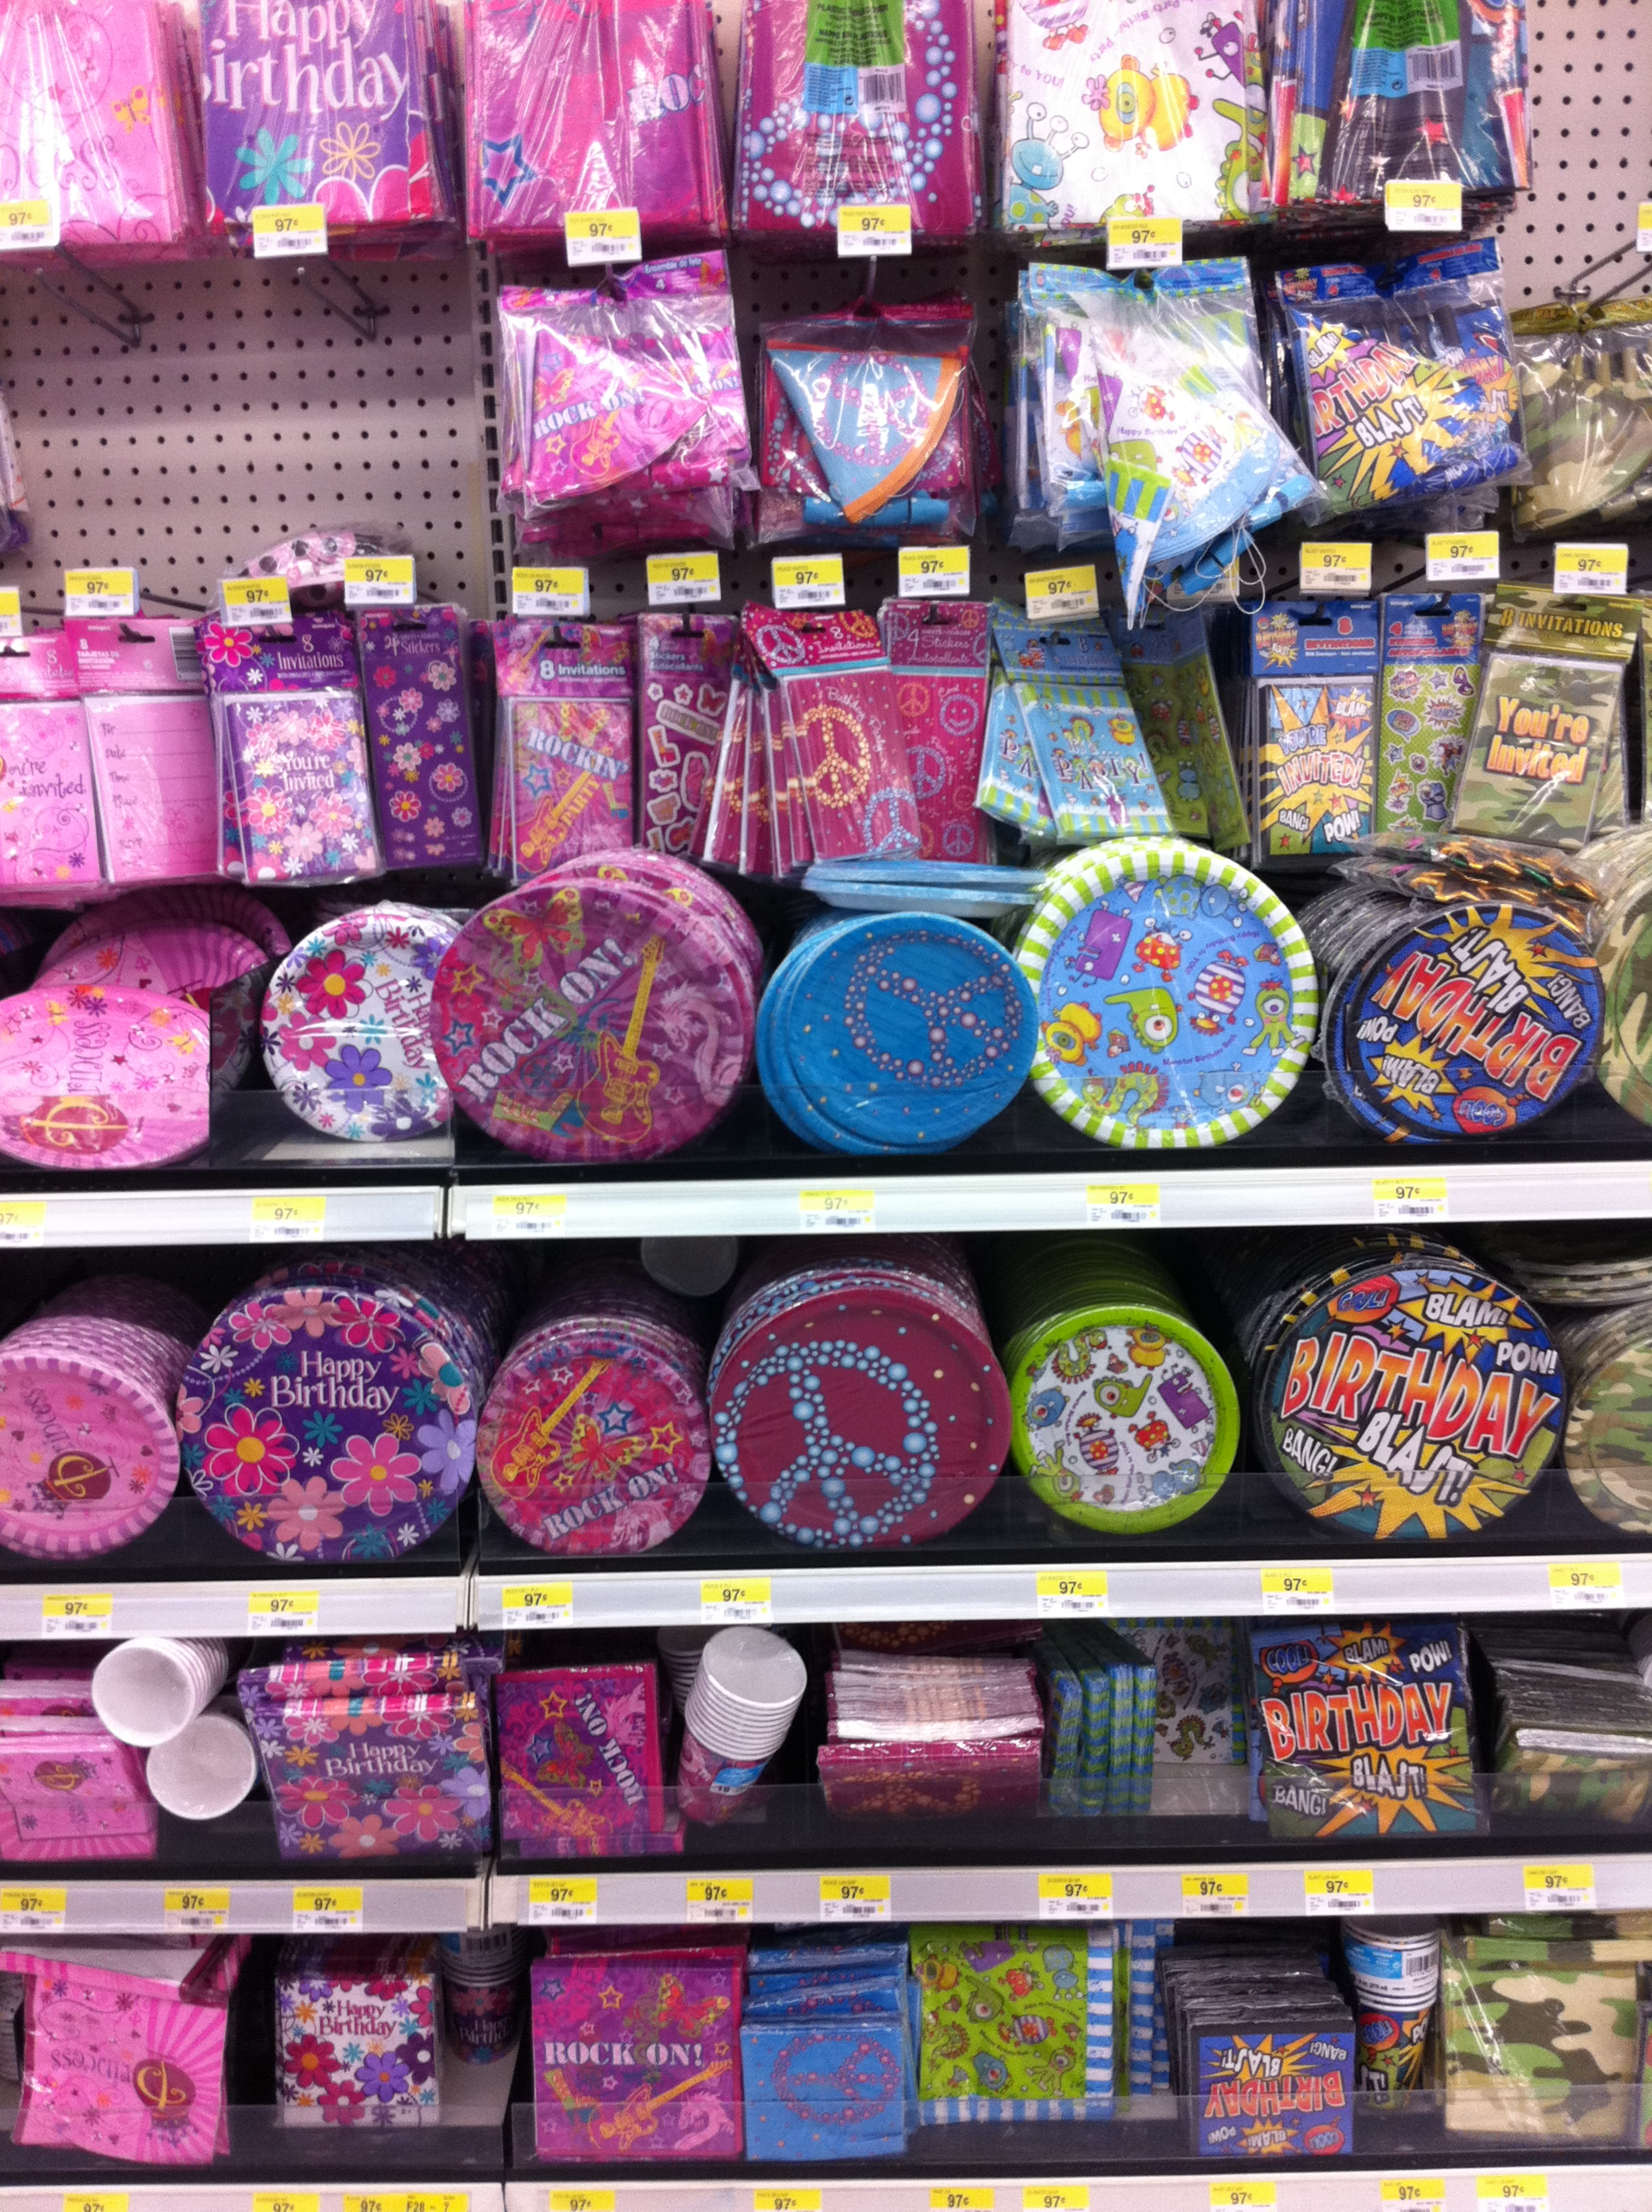 Walmarts Party Assortment